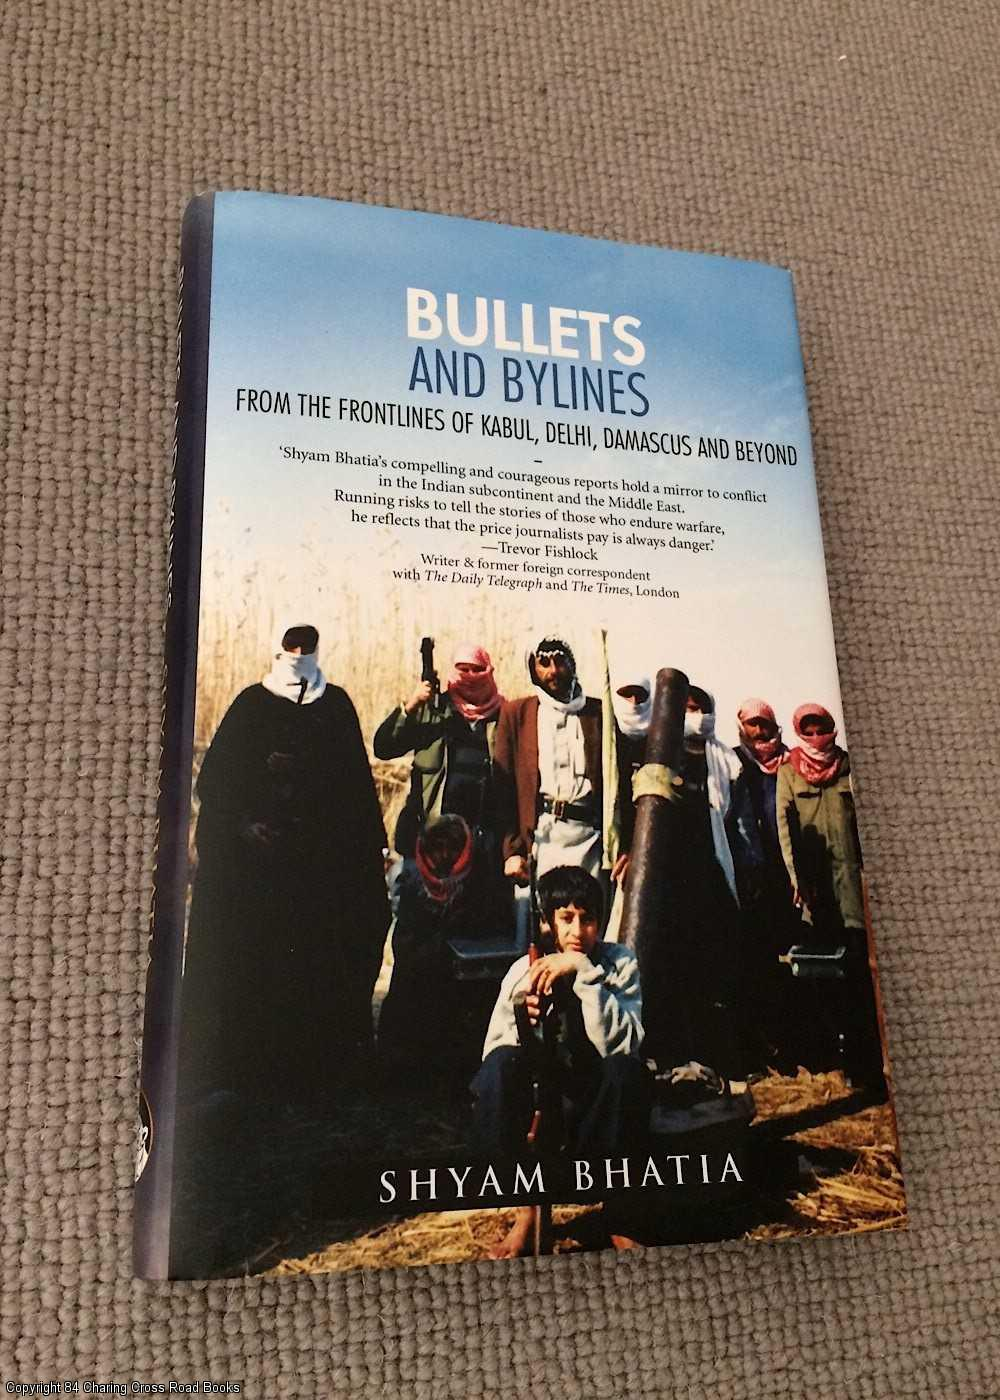 SHYAM BHATIA - Bullets and Bylines - From the Frontlines of Kabul, Delhi, Damascus and Beyond